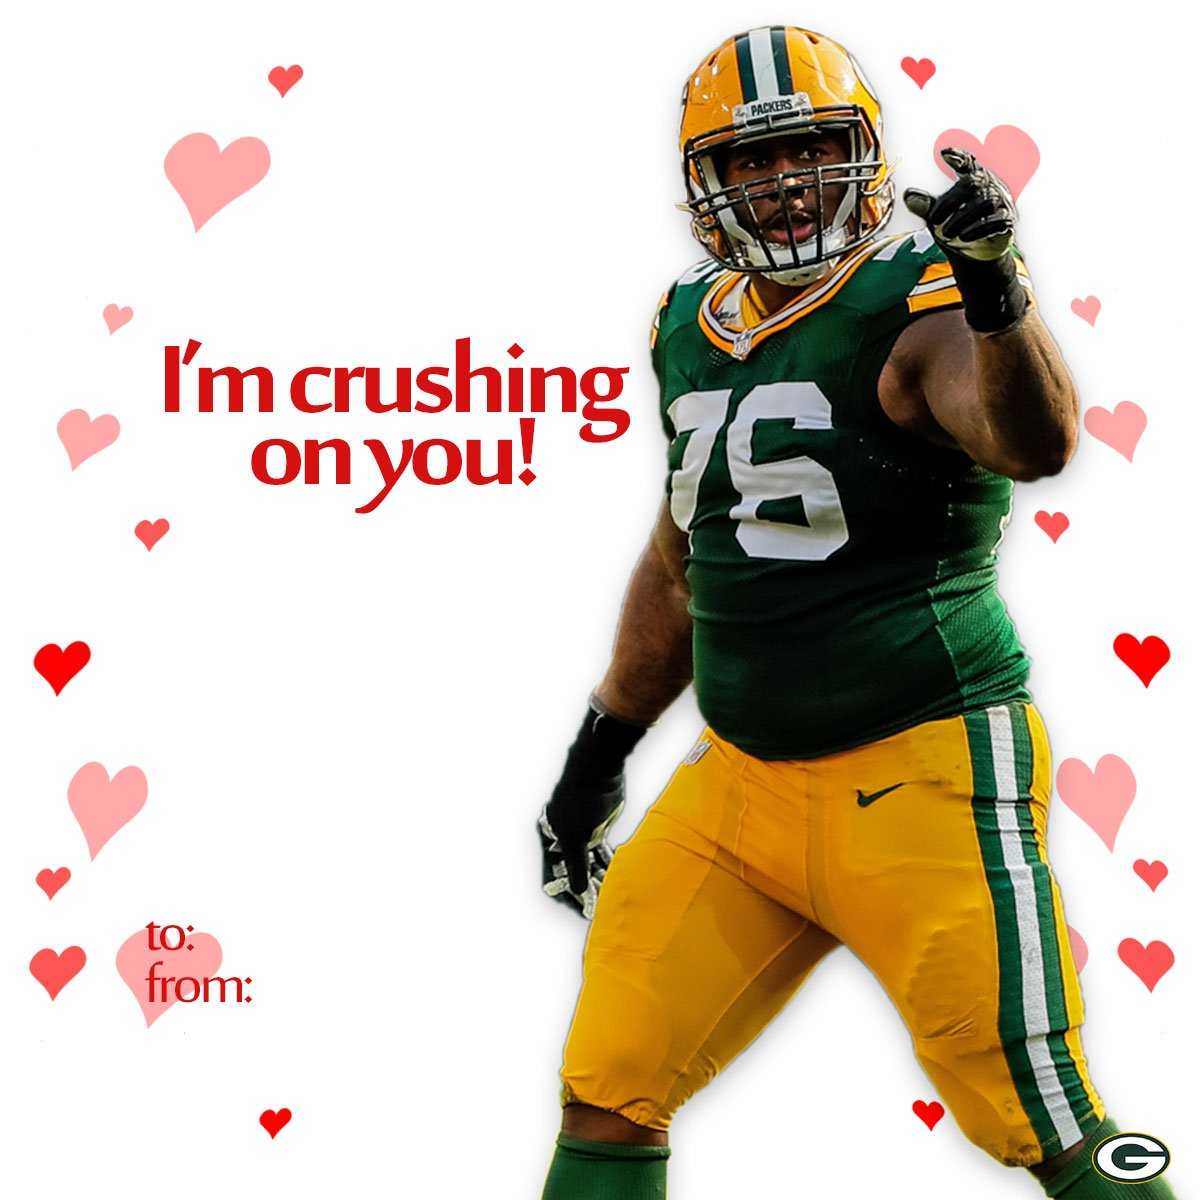 Show your crush some ❤️ this Valentine's Day.  Download & print #Packers cards: https://t.co/4U5HZK45ta https://t.co/5HgKiw6V6Z